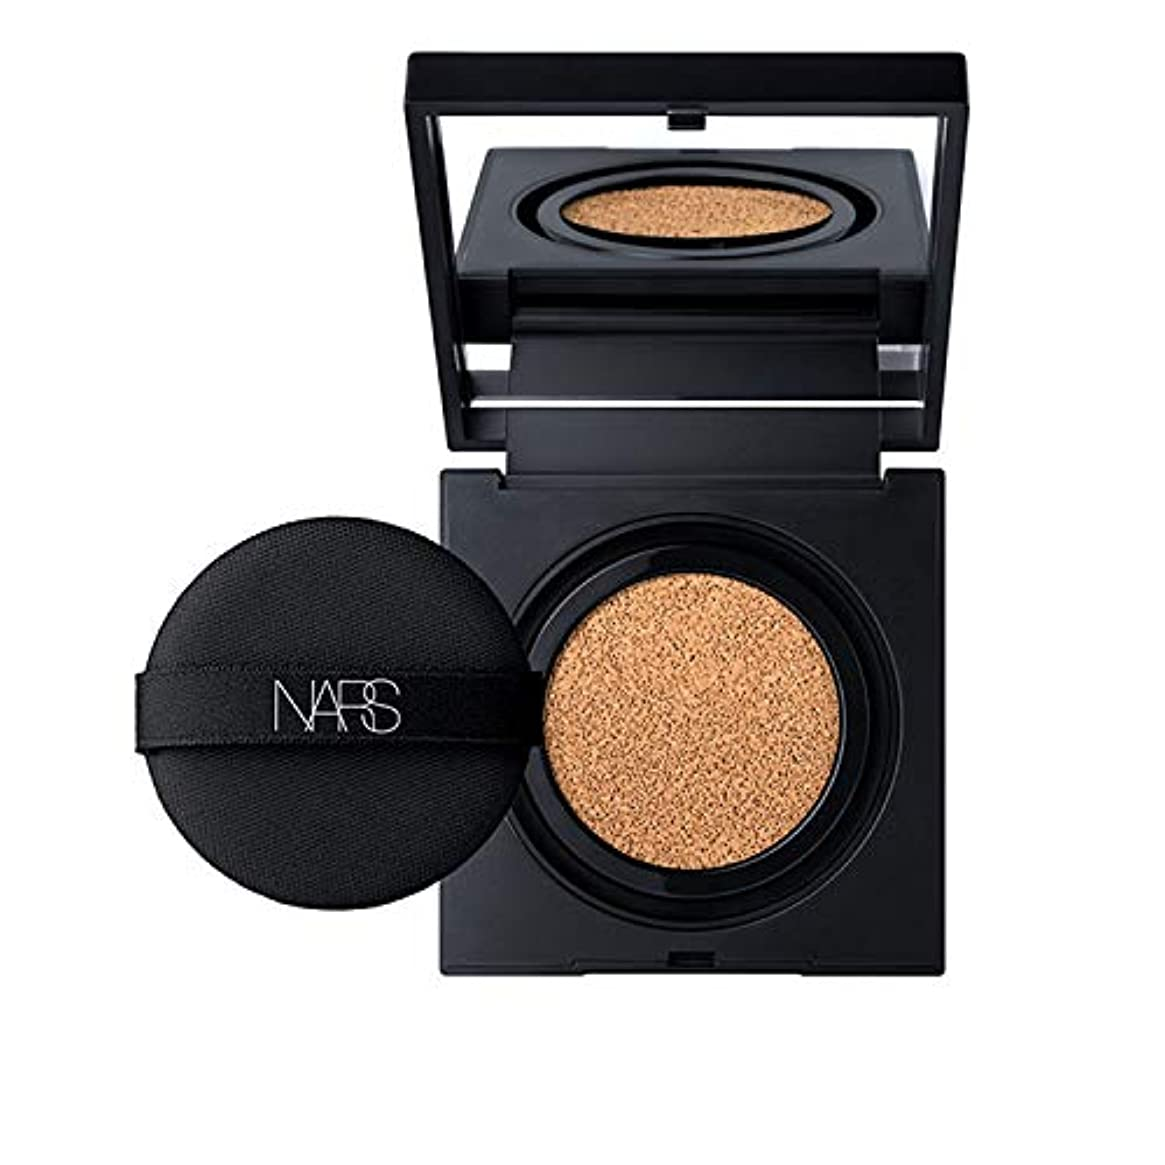 付けるラショナルマラソンNars(ナーズ) Natural Radiant Longwear Cushion Foundation 12g # Punjab